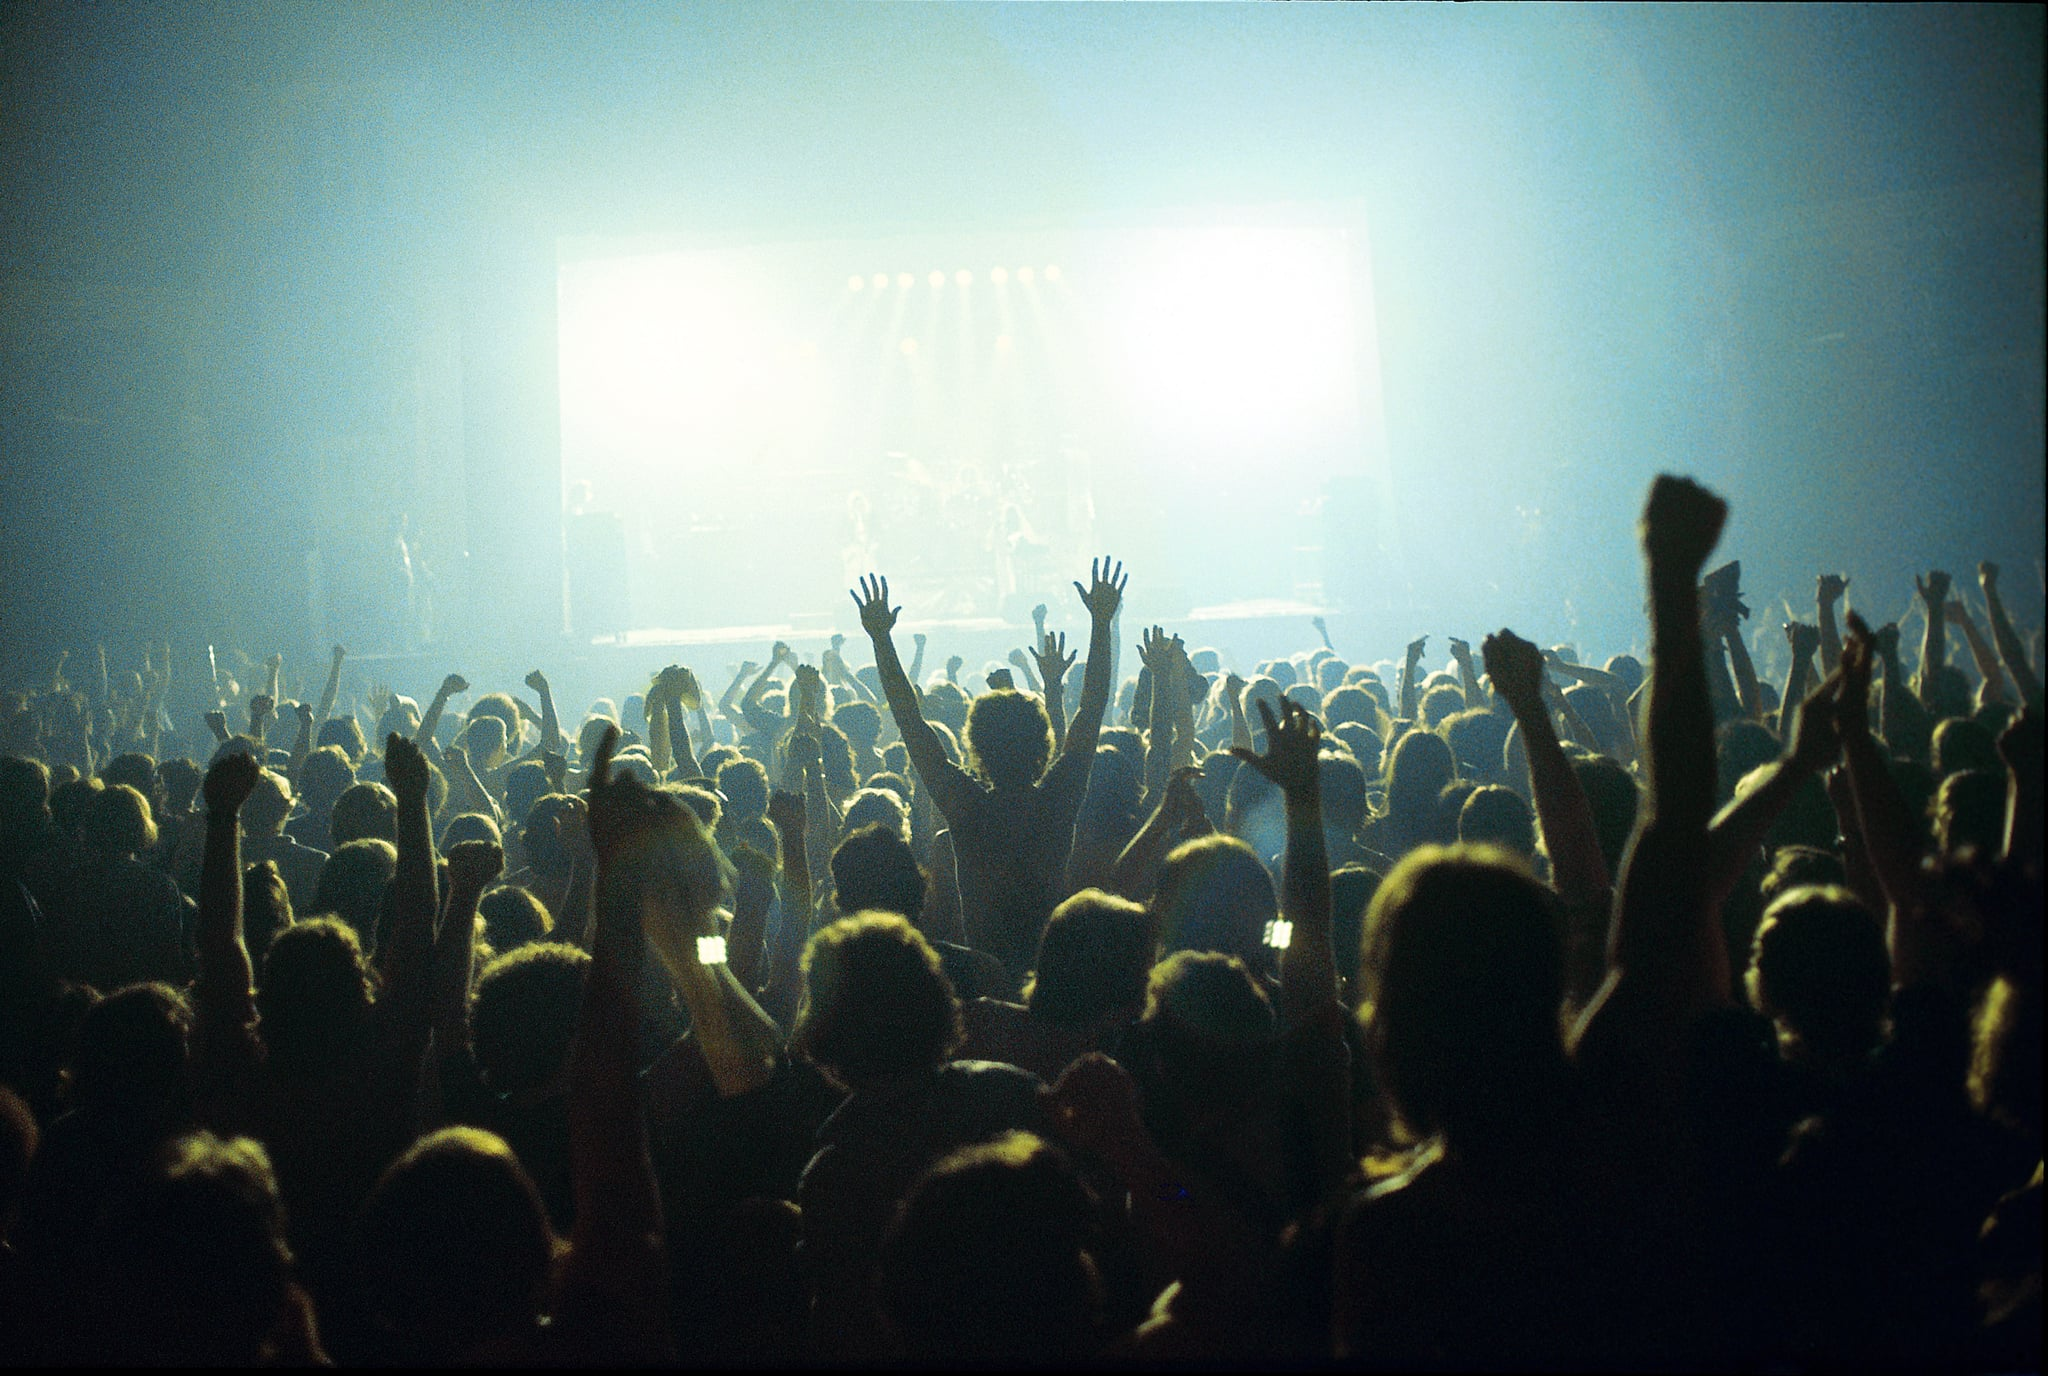 A general view of a rock concert taken from the back fo a venue showing the audience in silhouette raising their arms and cheering with bright lights shining from the stage, circa 1980. (Photo by Fin Costello/Redferns)